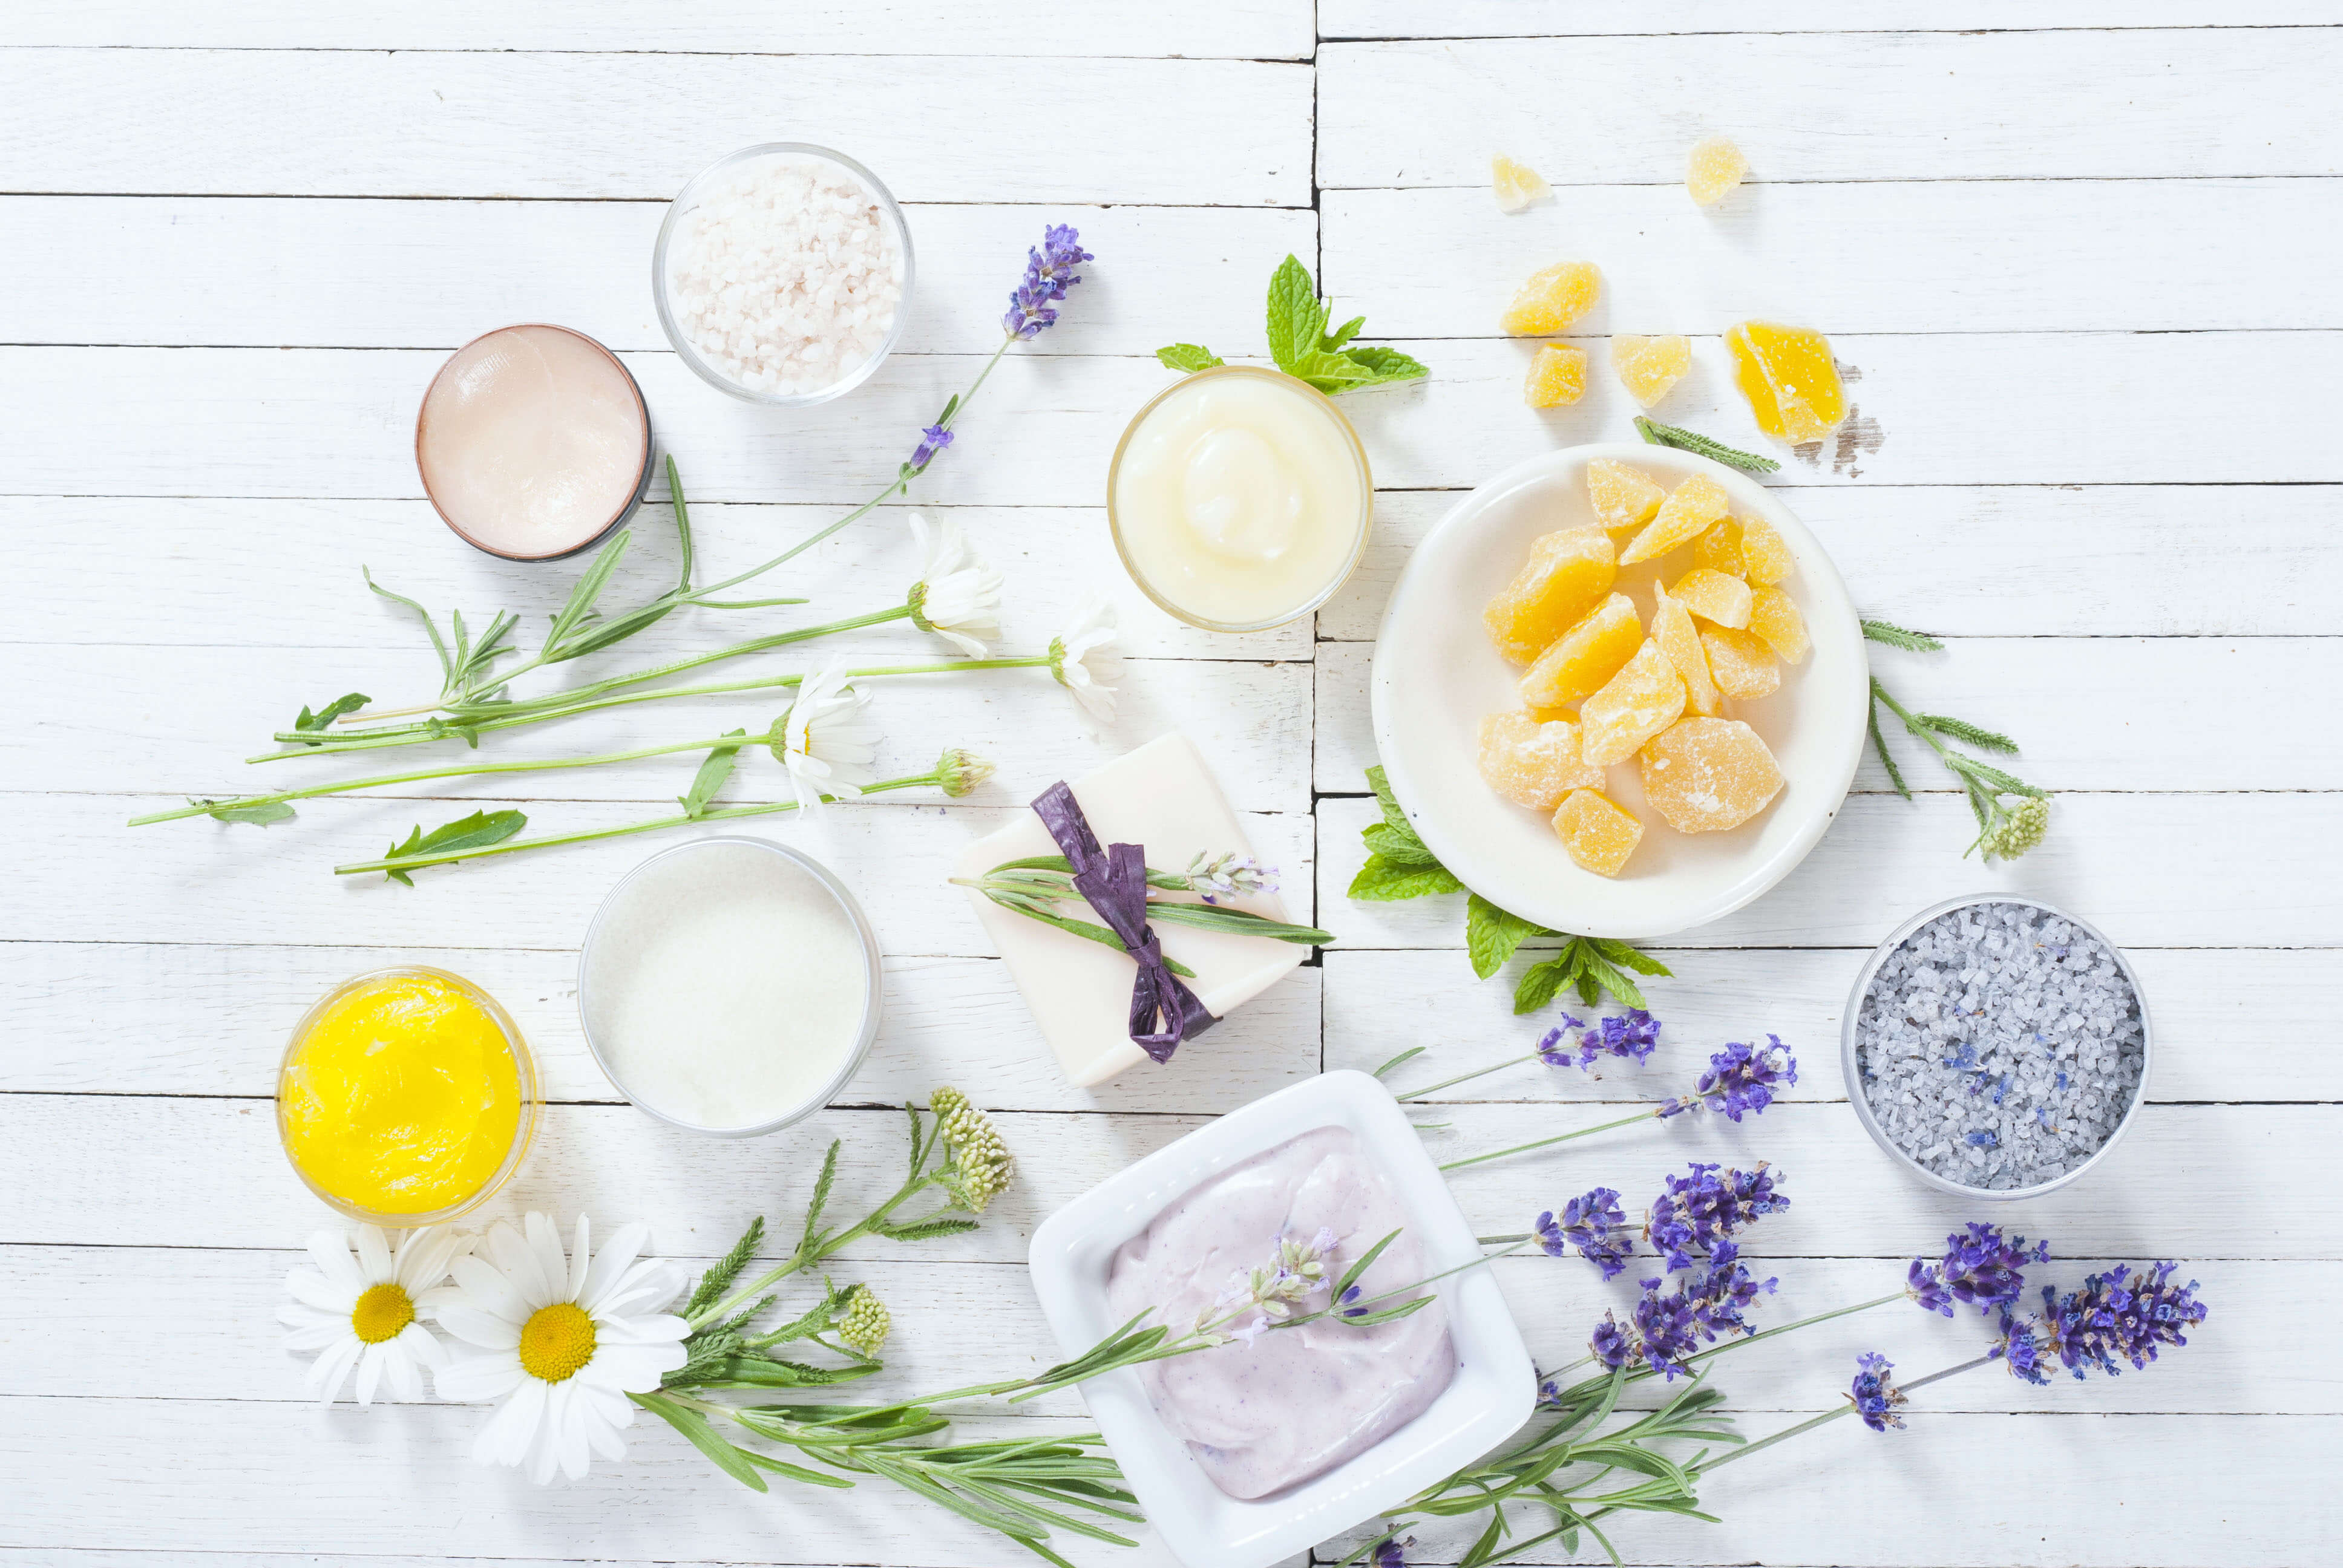 How to take care of your skin as we move into spring